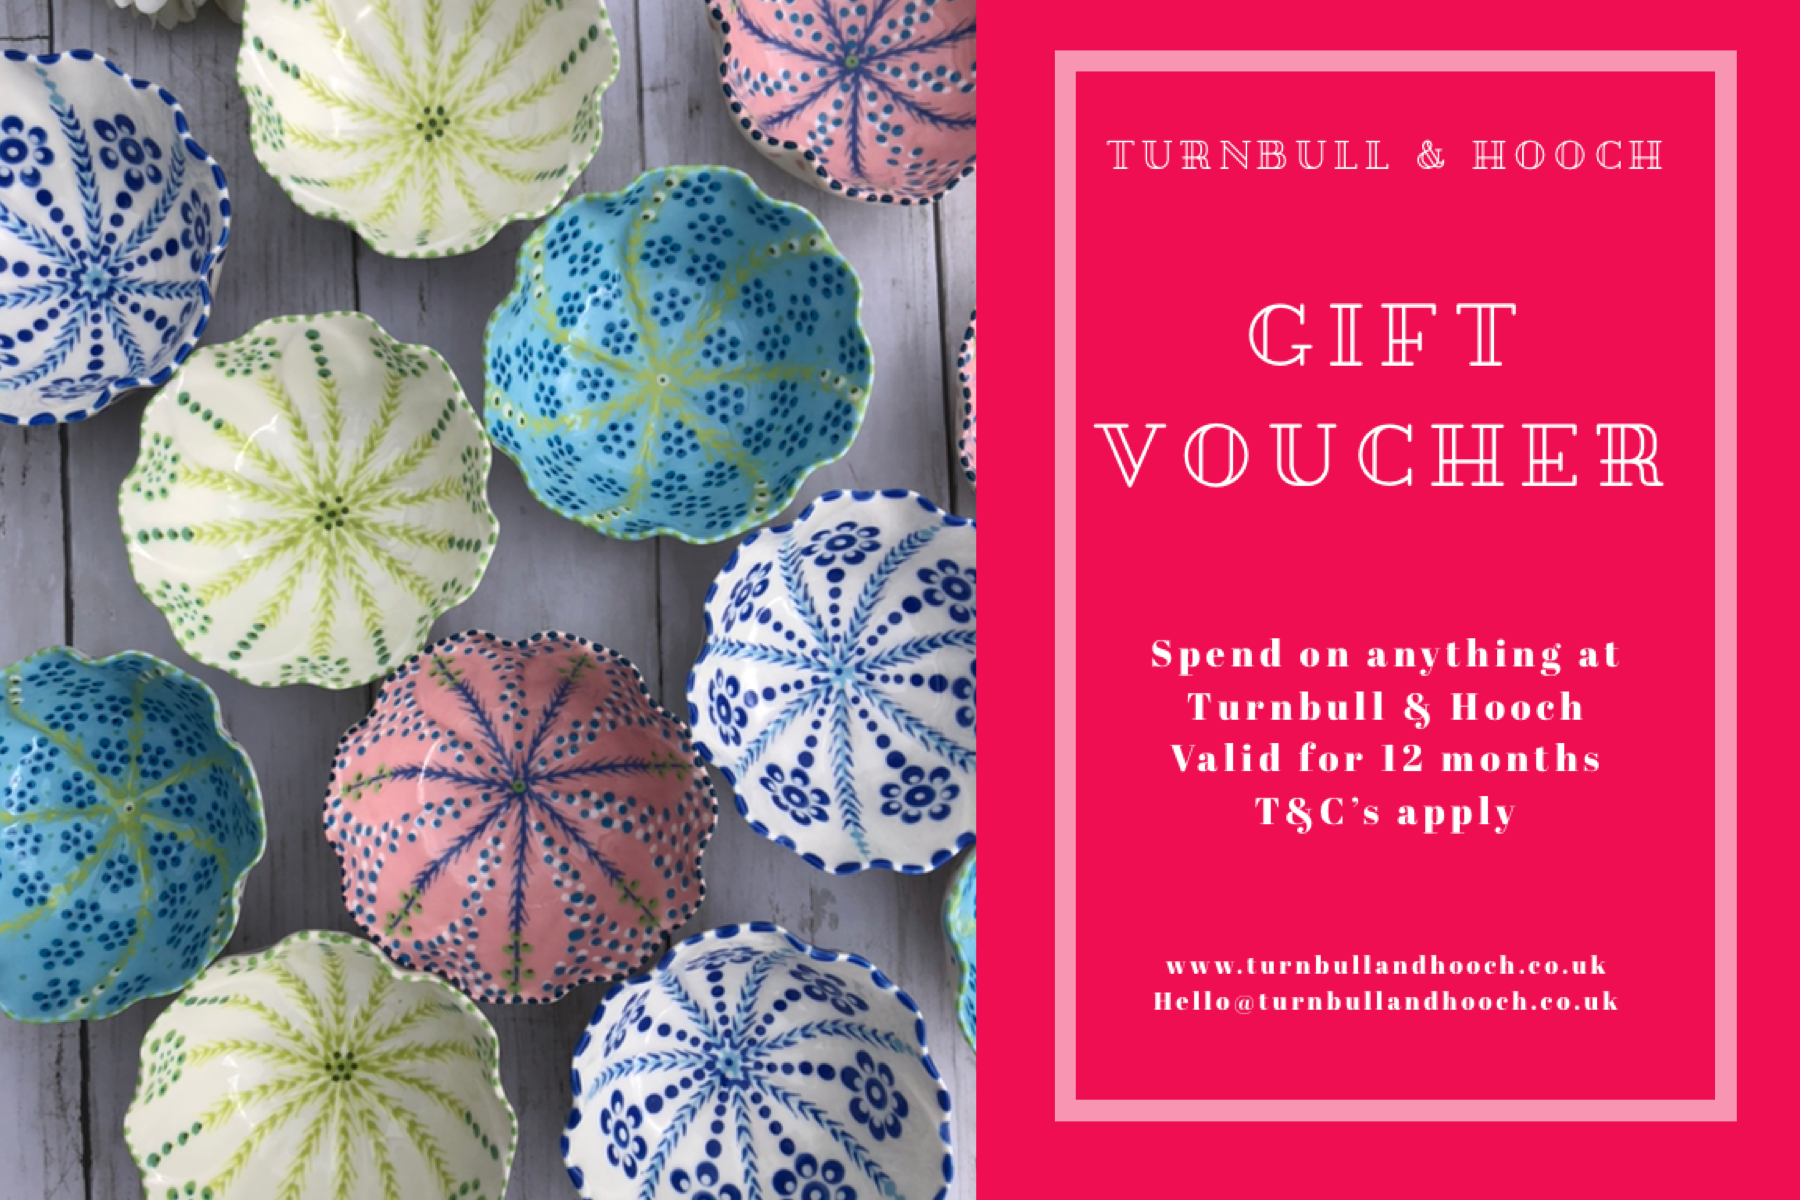 Turnbull & Hooch Gift Card